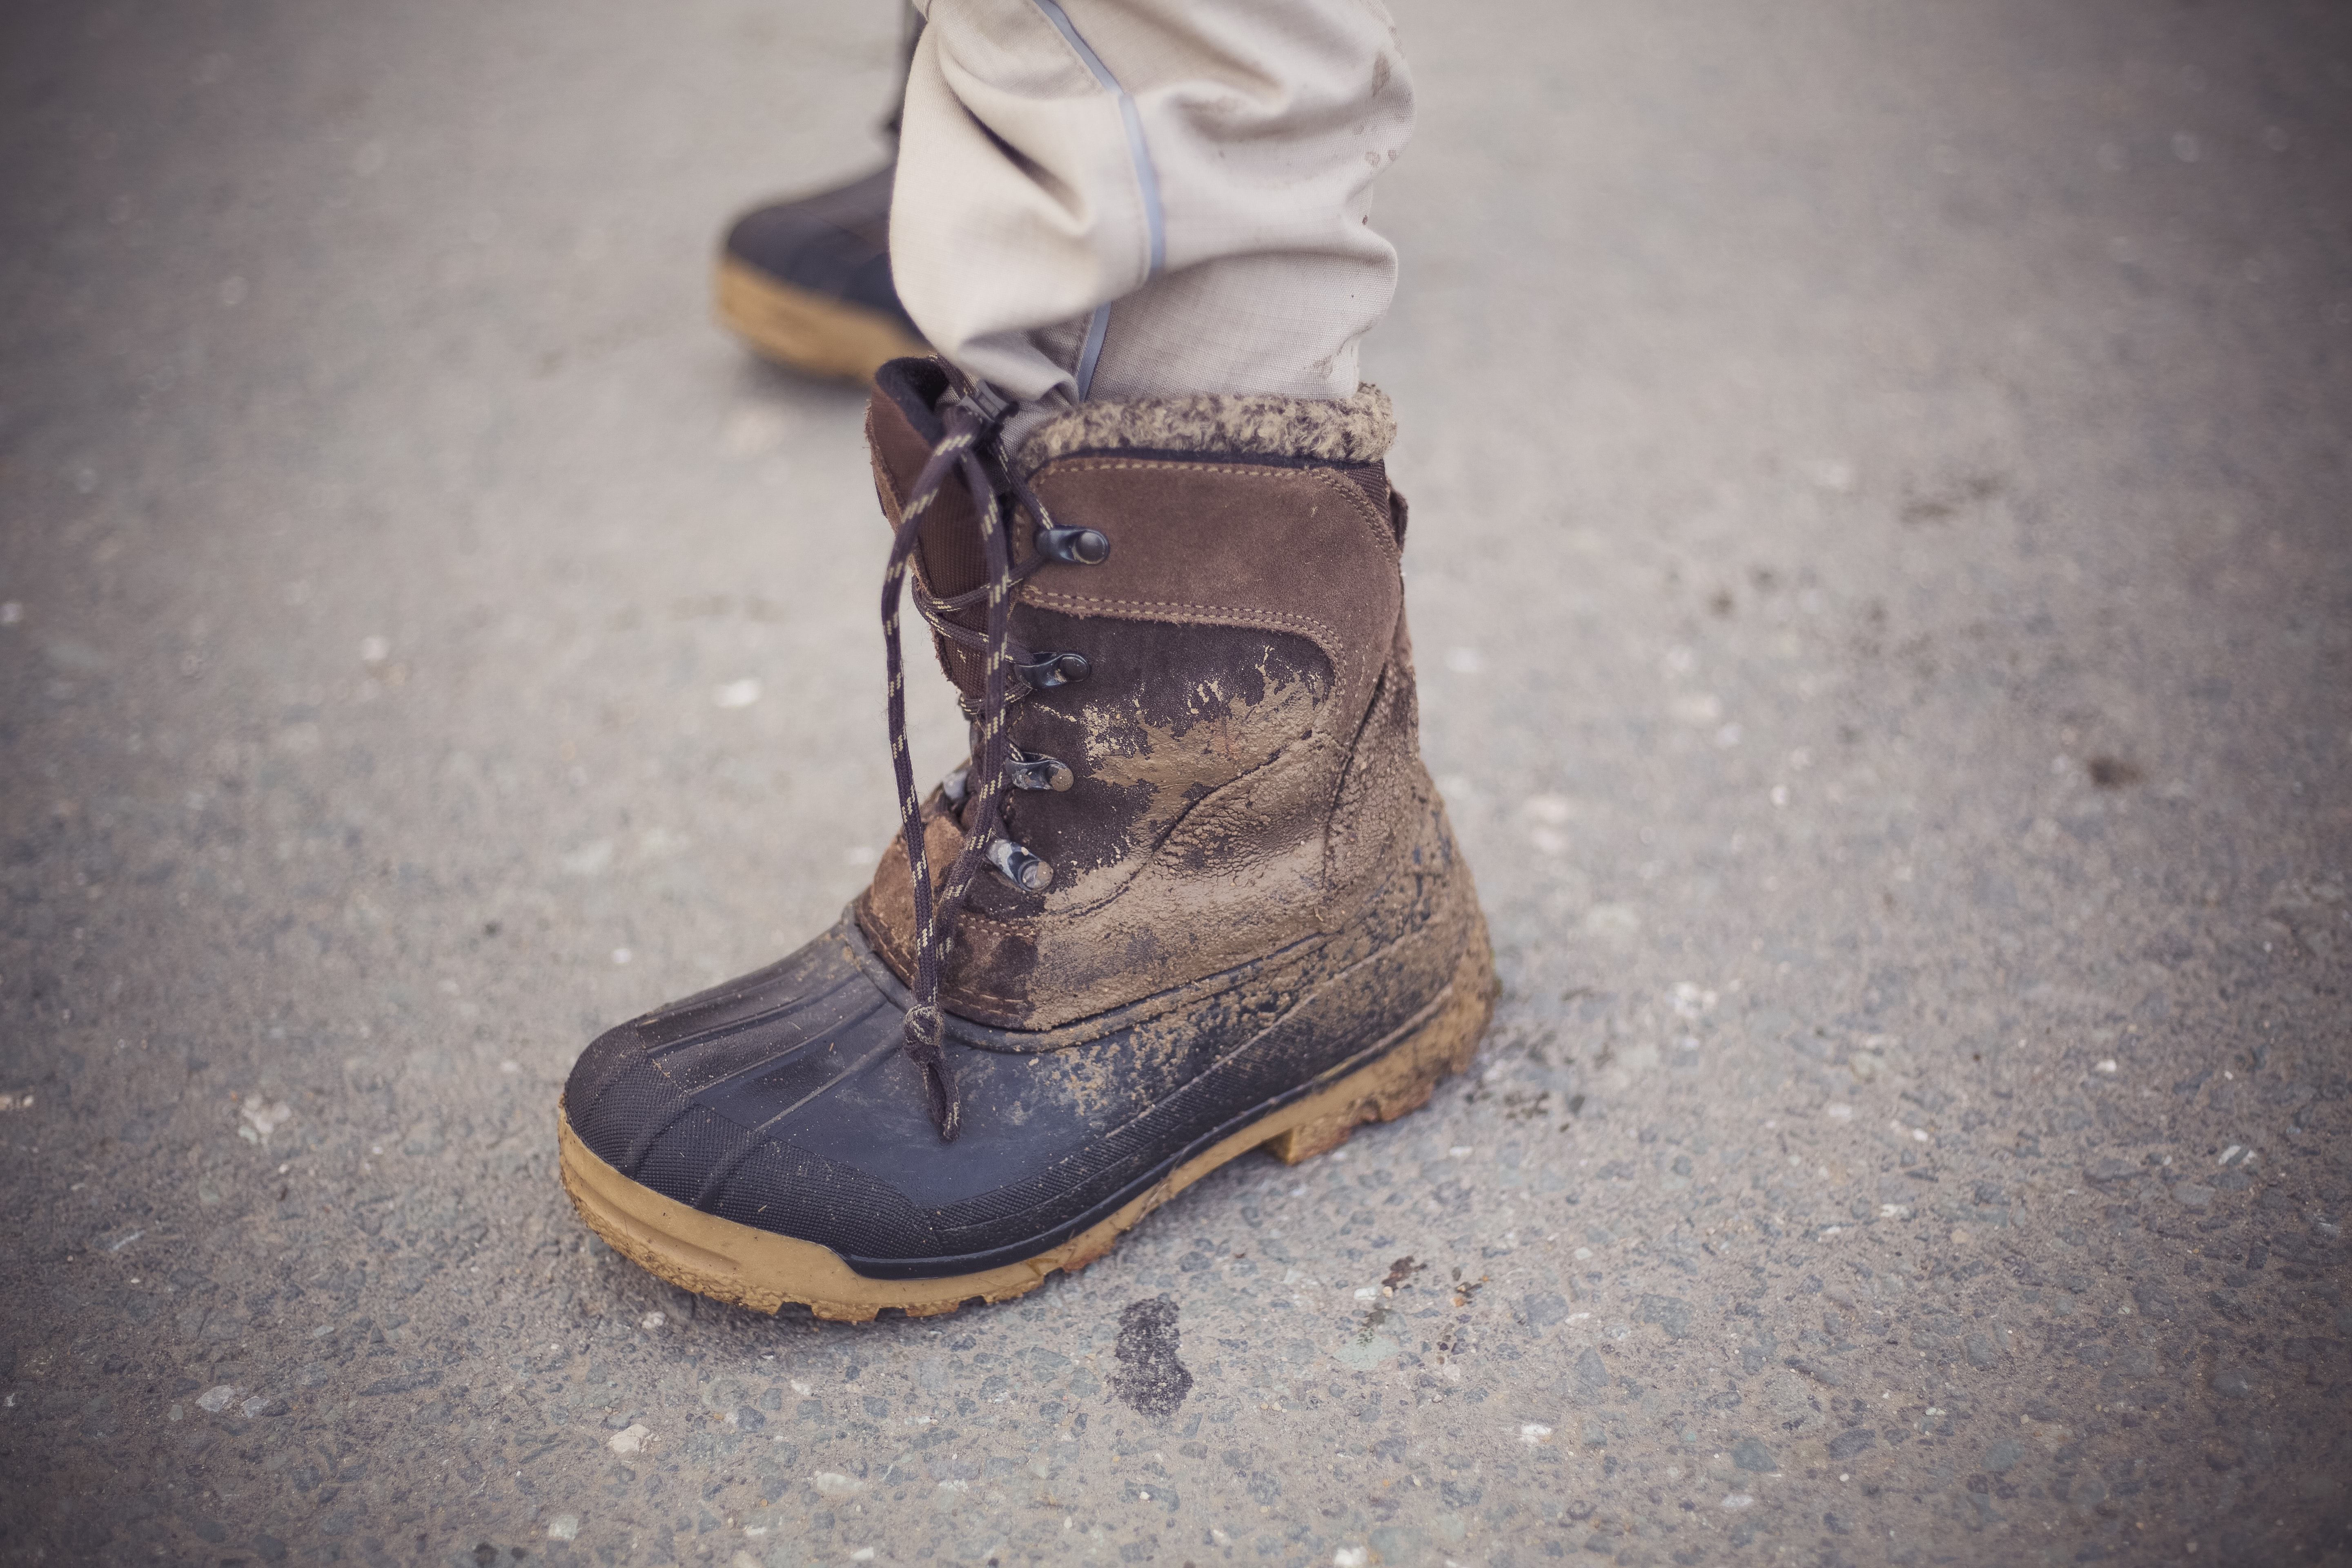 person wearing brown boot